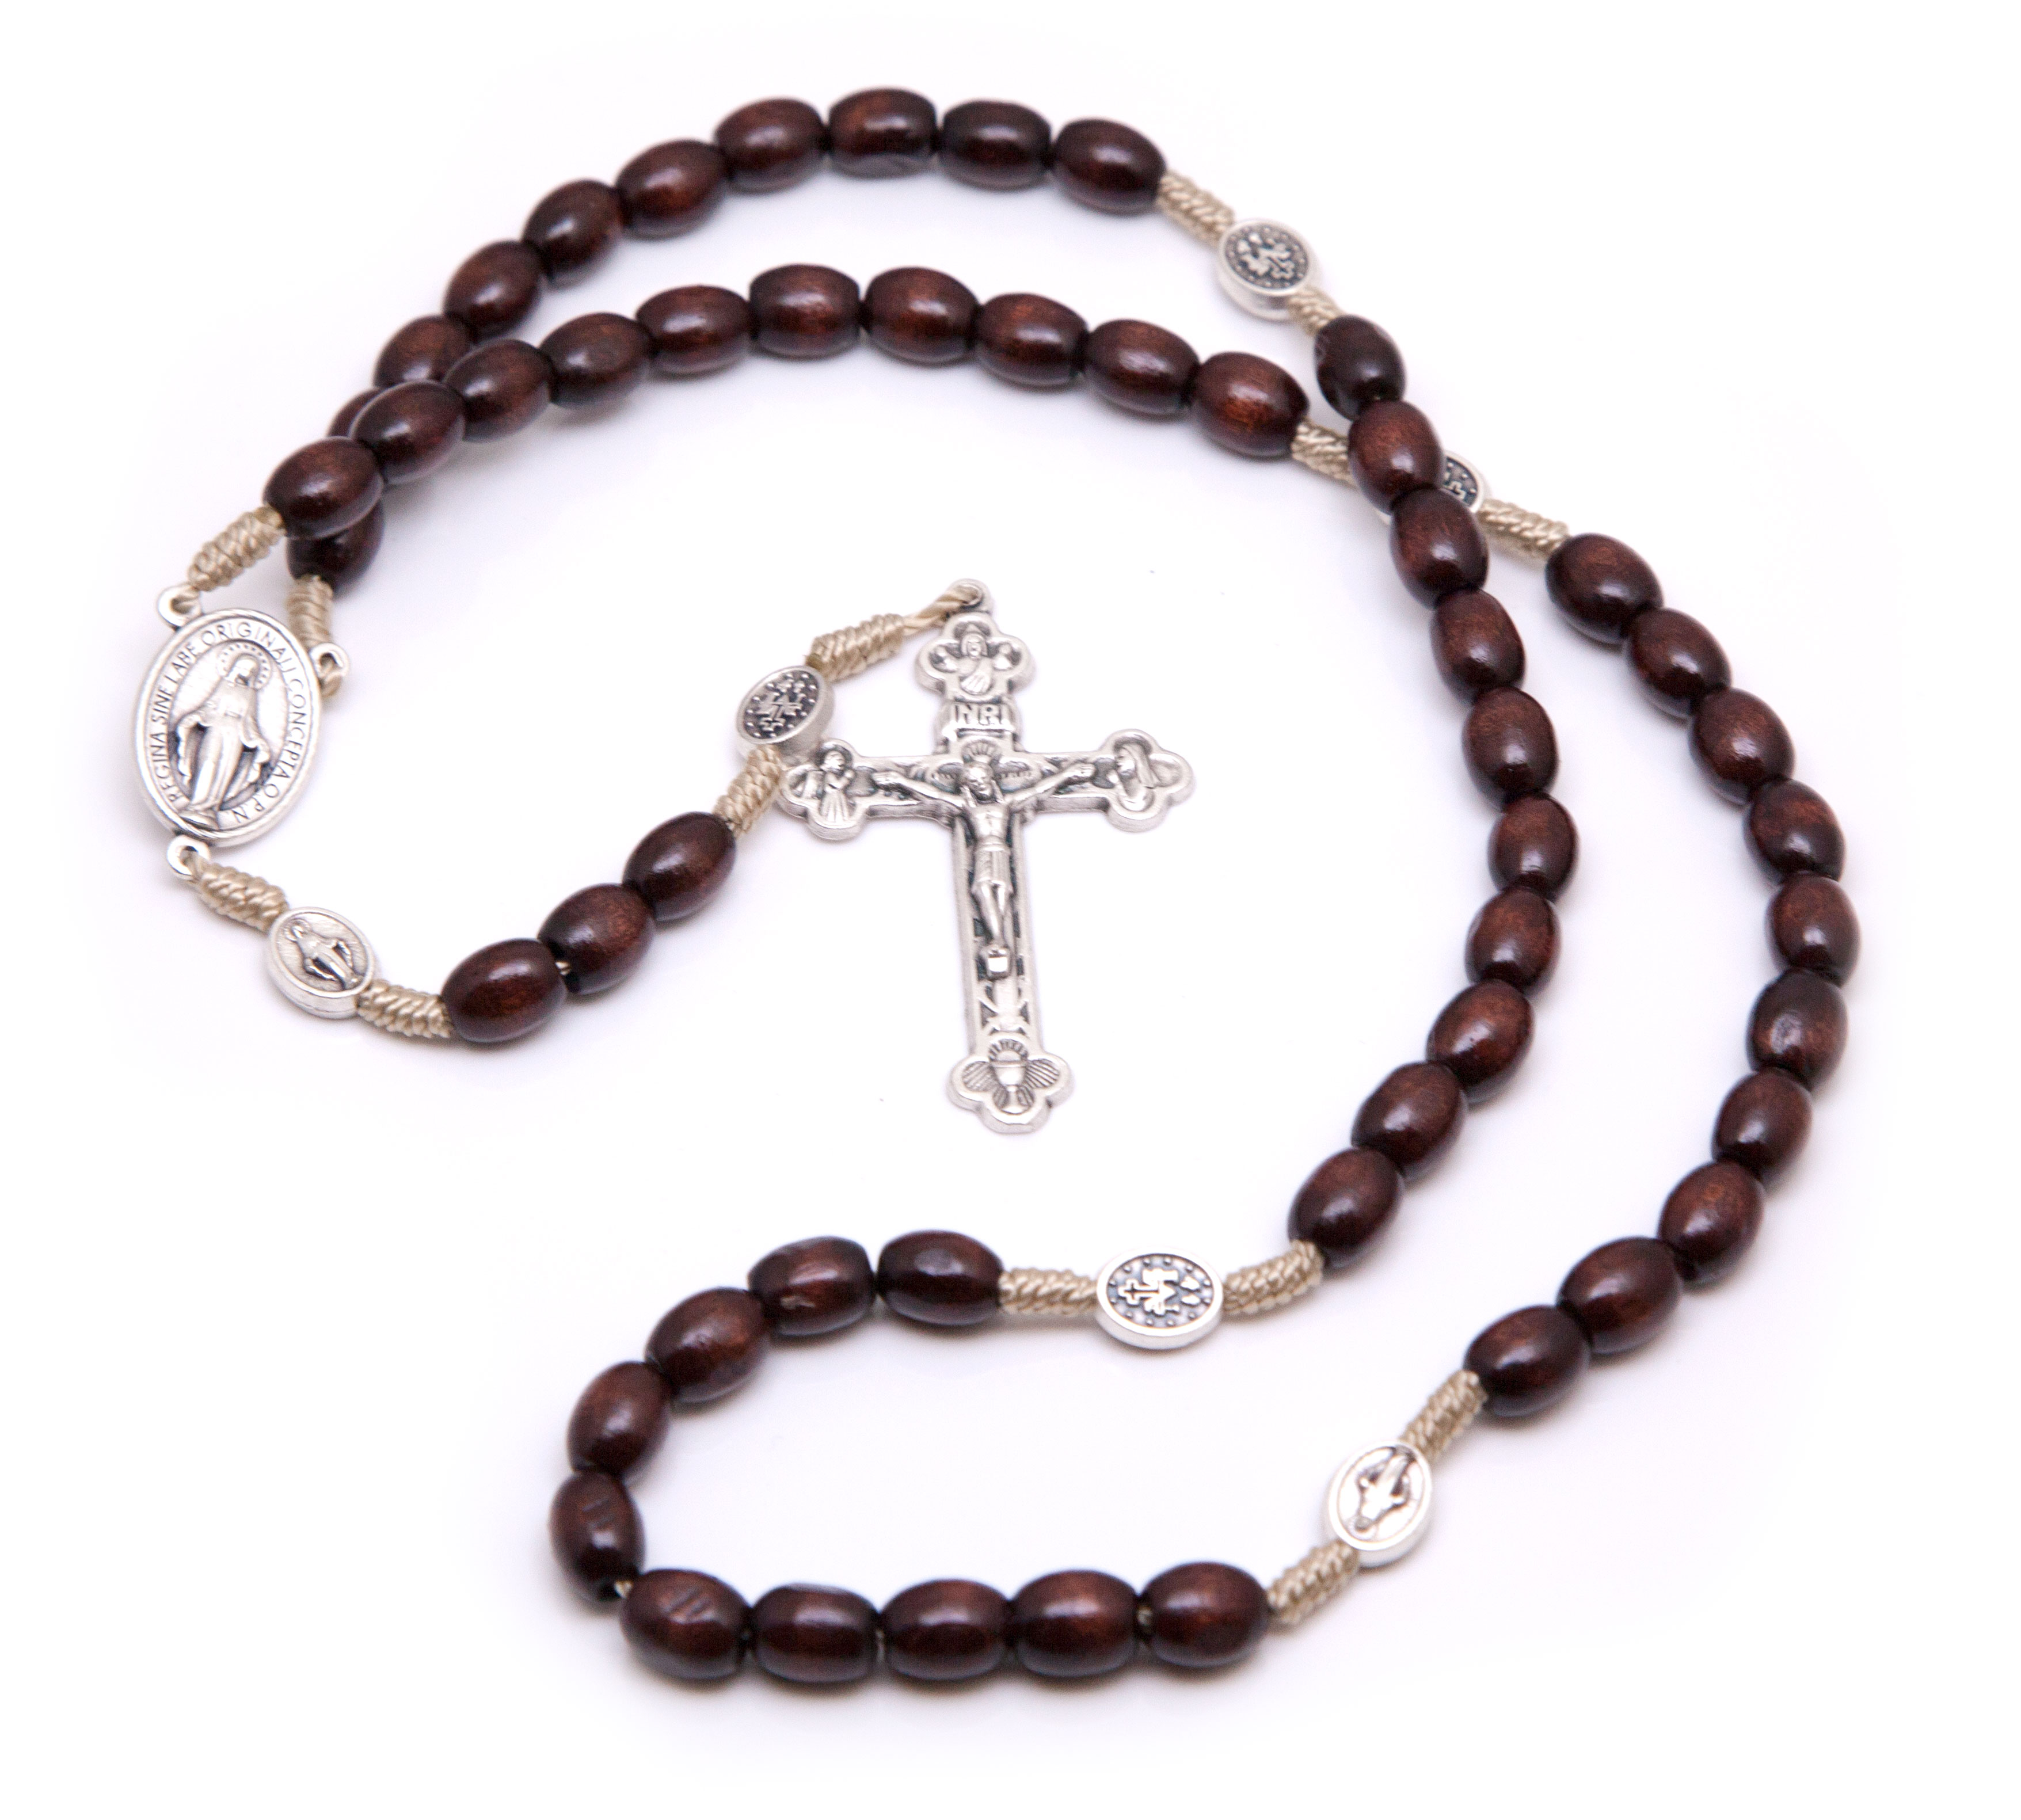 Miraculous Medal Wooden Rosary